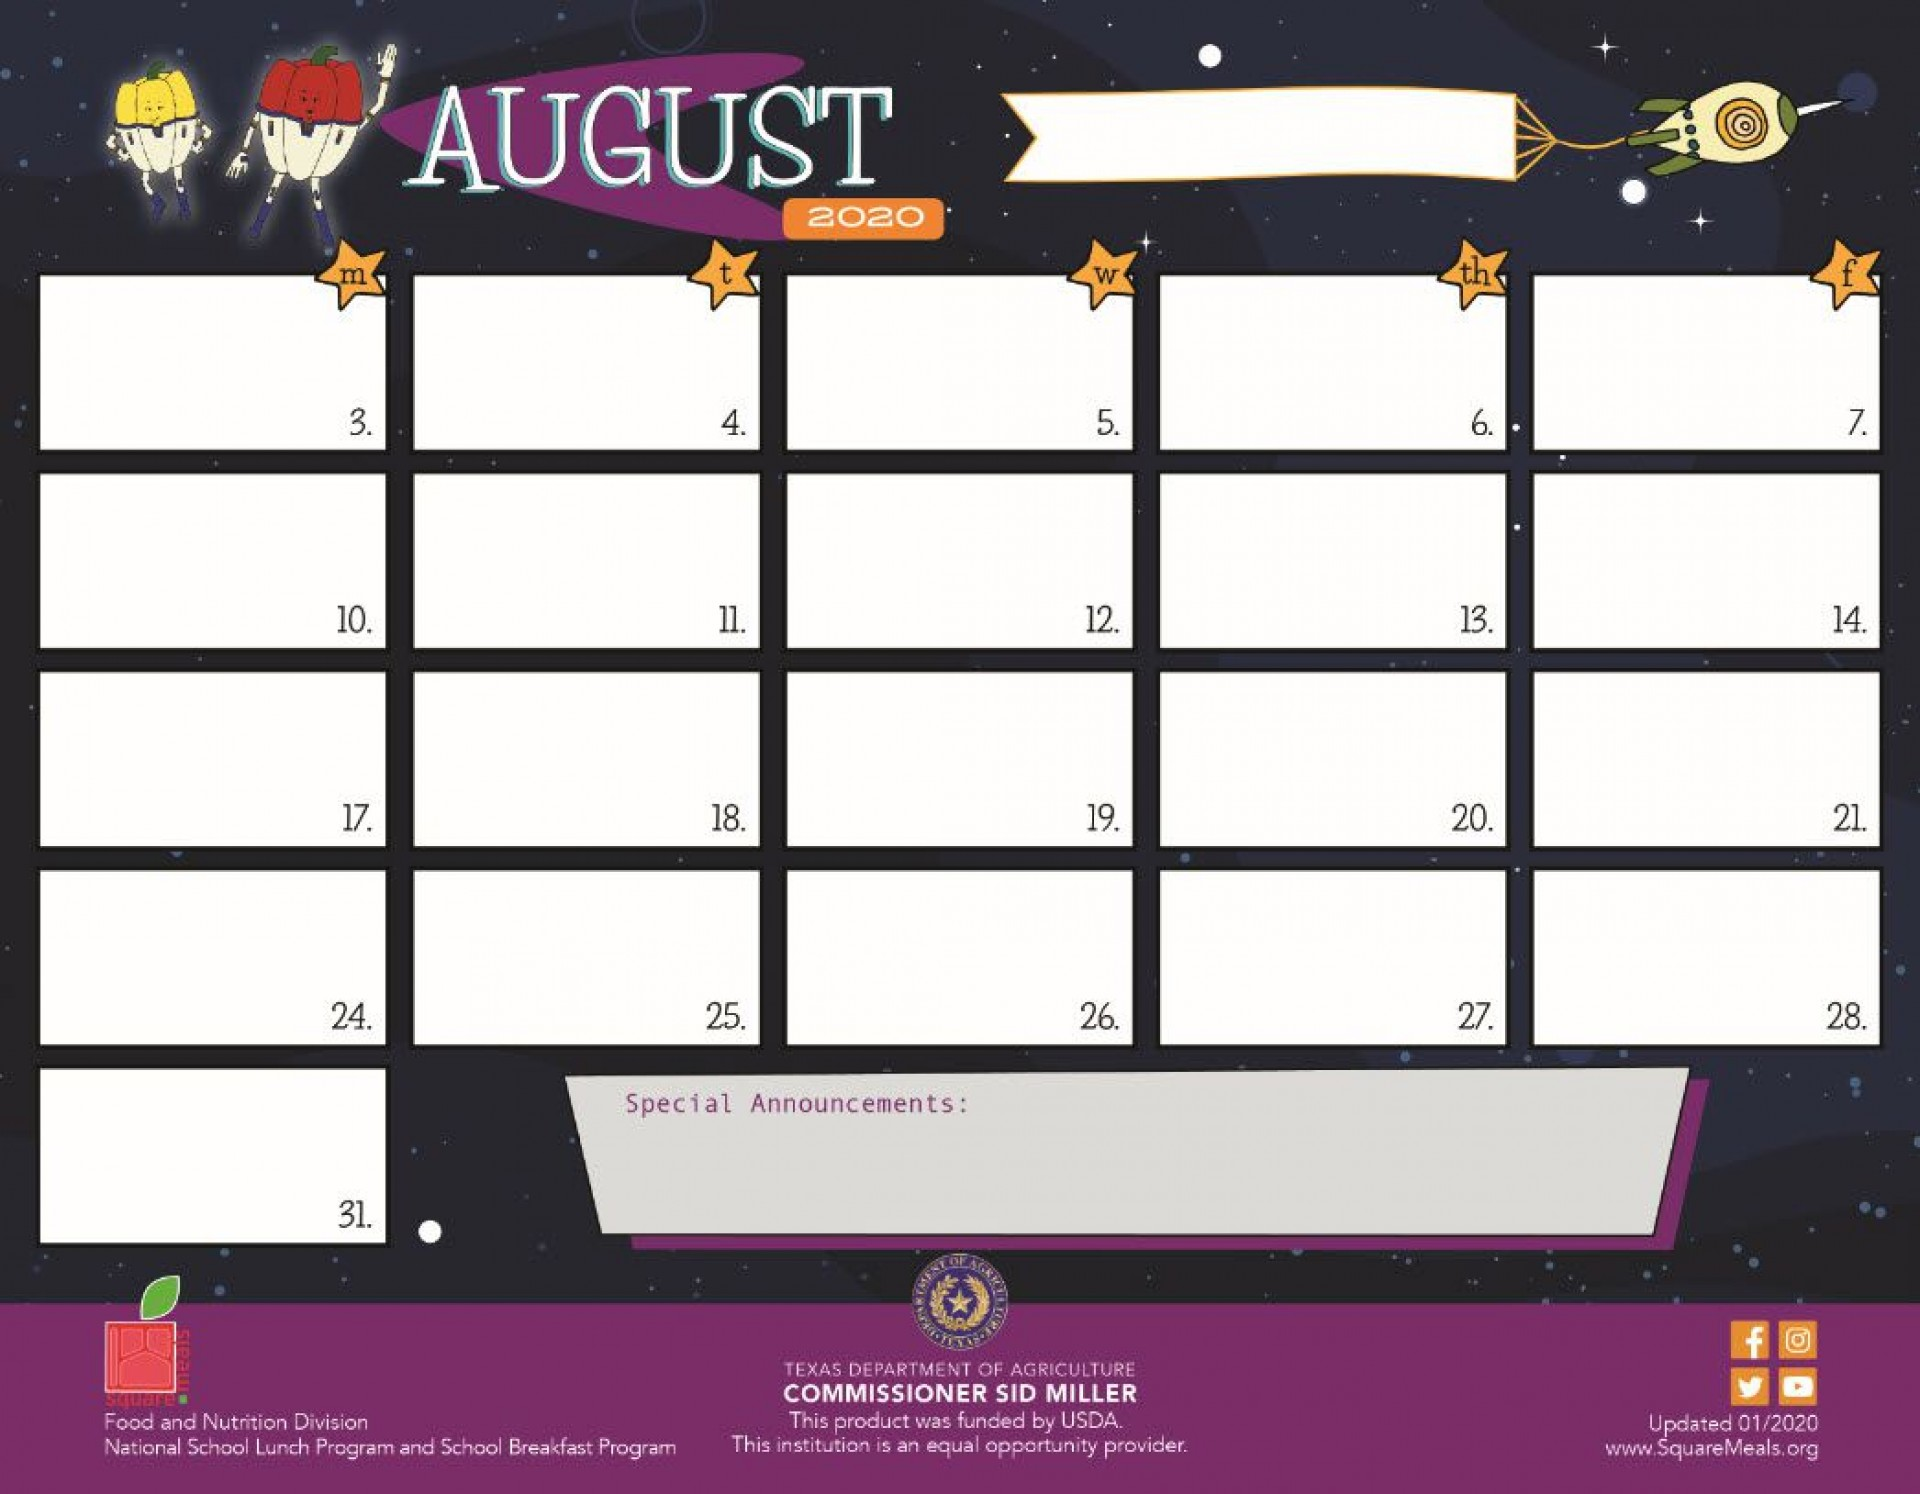 001 Fascinating School Lunch Menu Template Highest Clarity  Monthly Free Printable Blank1920